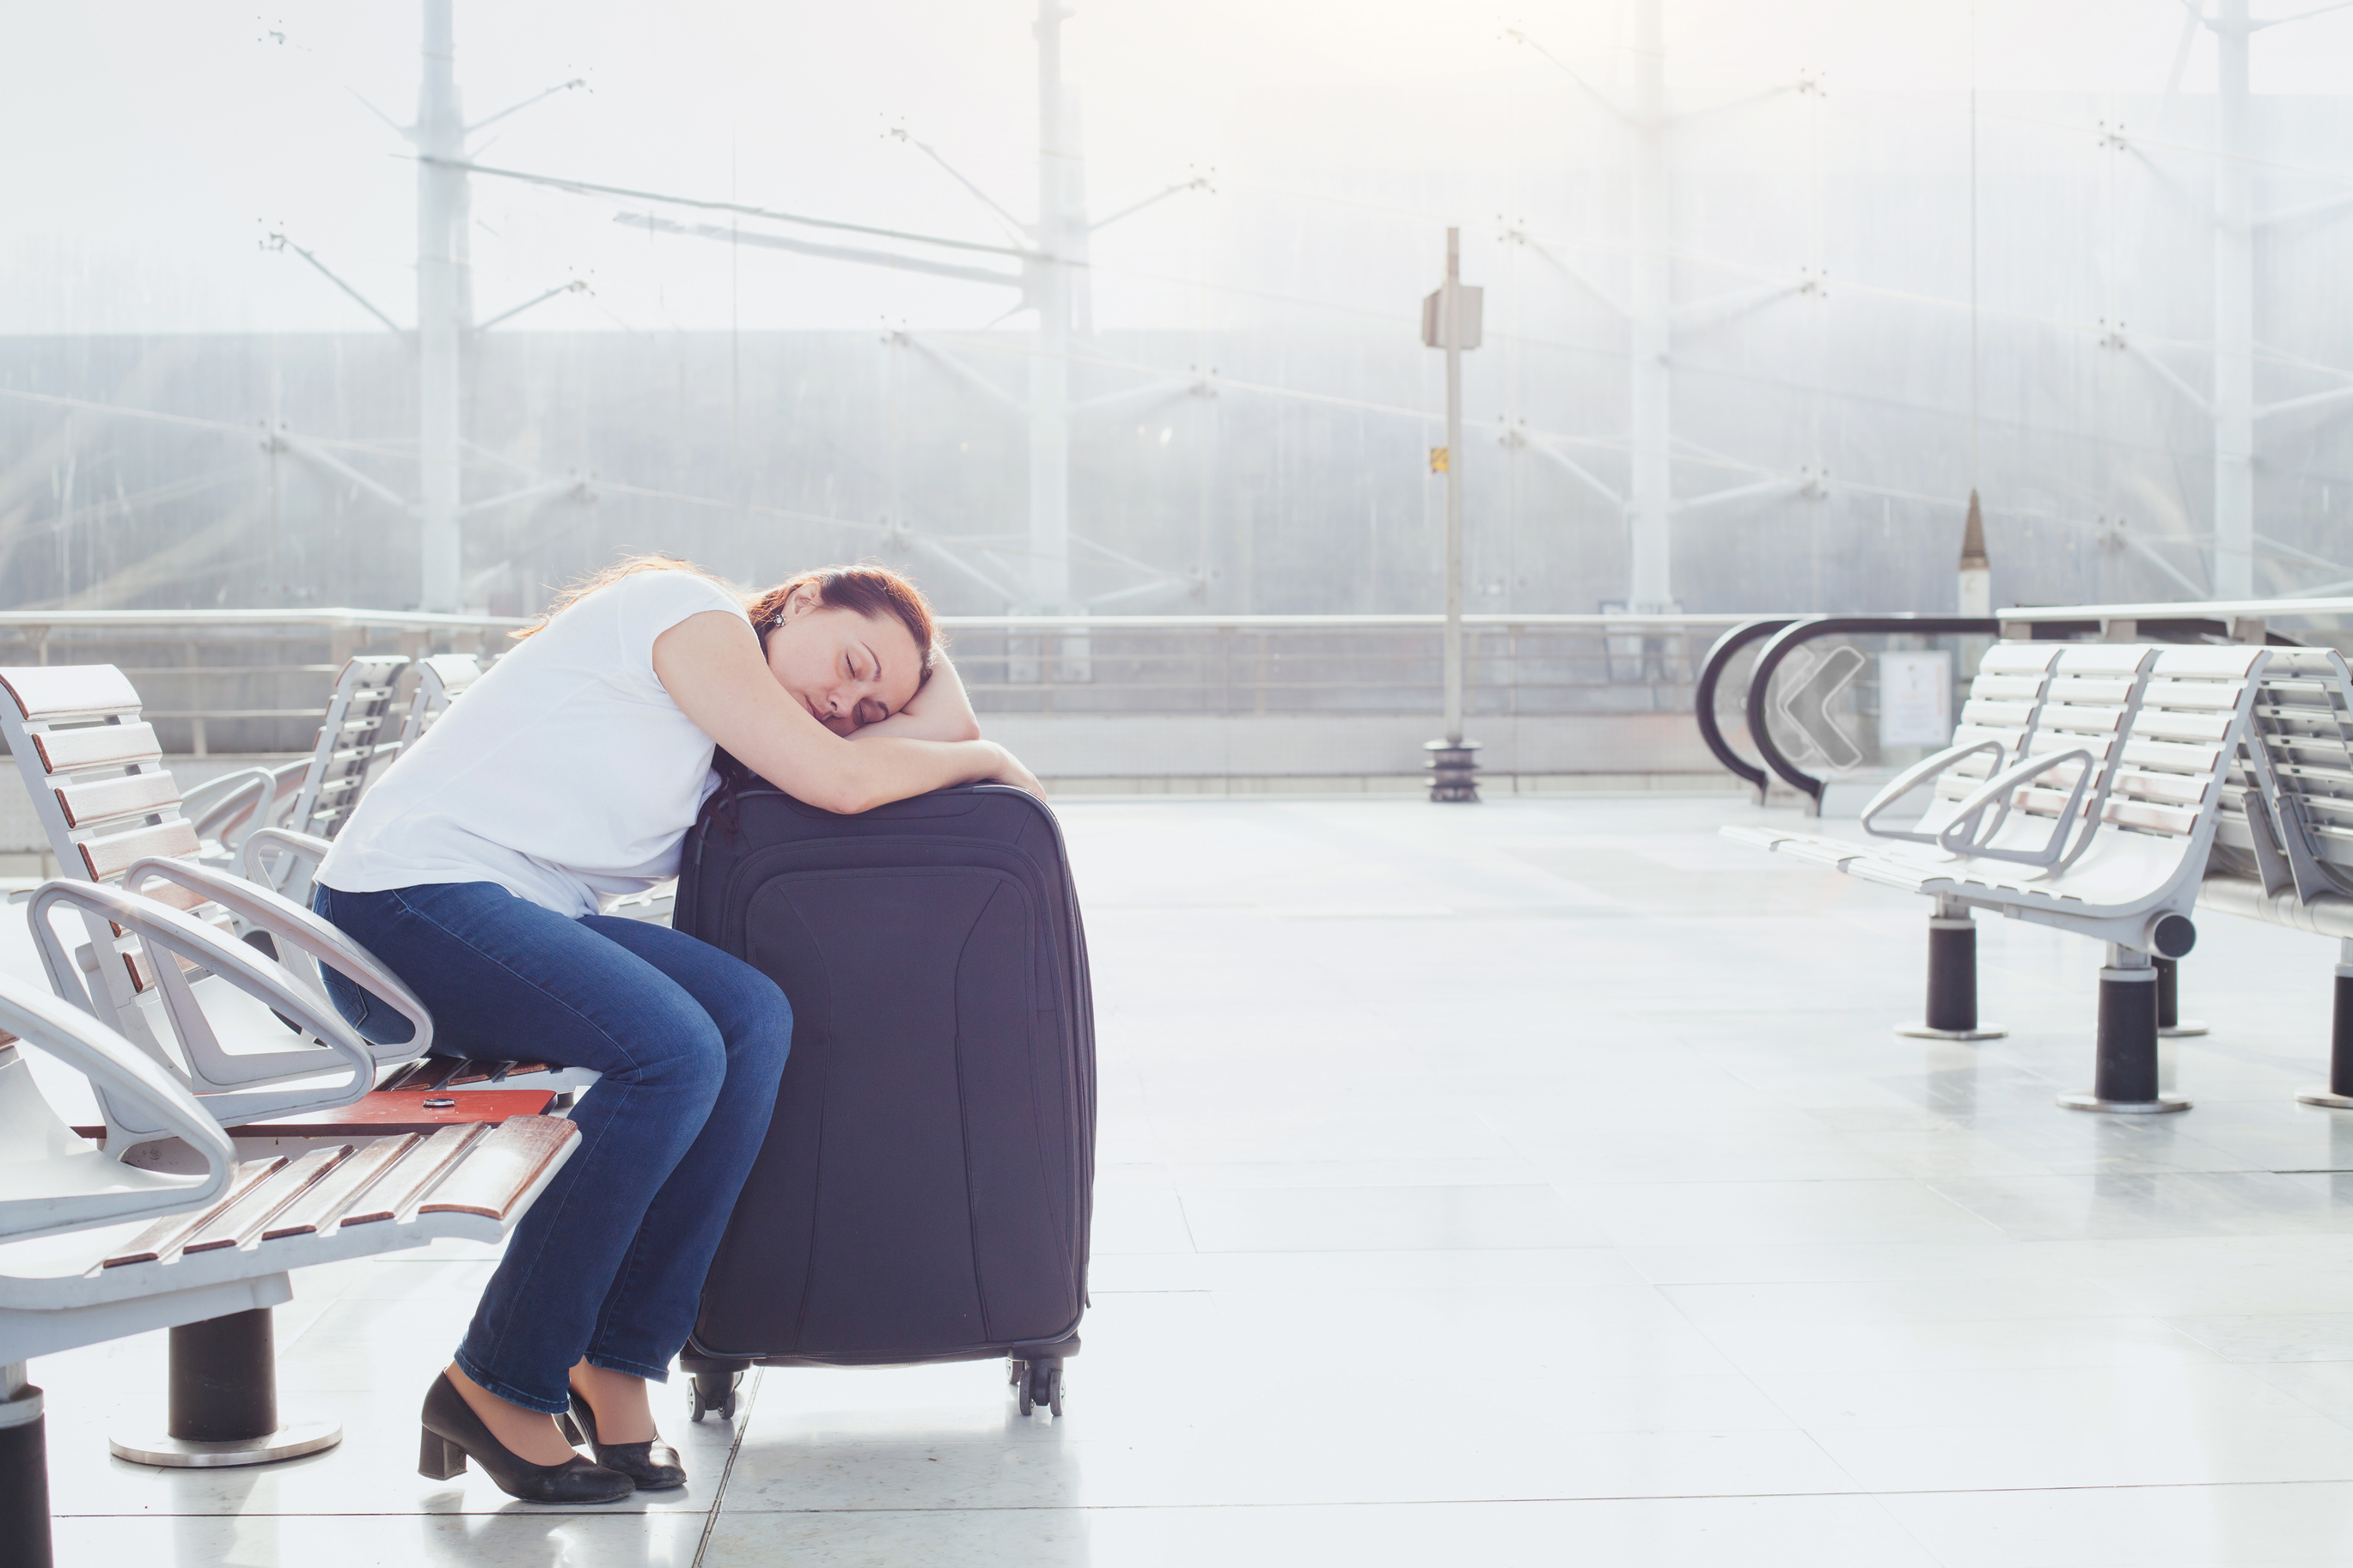 woman-sleeping-suitcase-airport.jpg?mtime=20180710125232#asset:102446